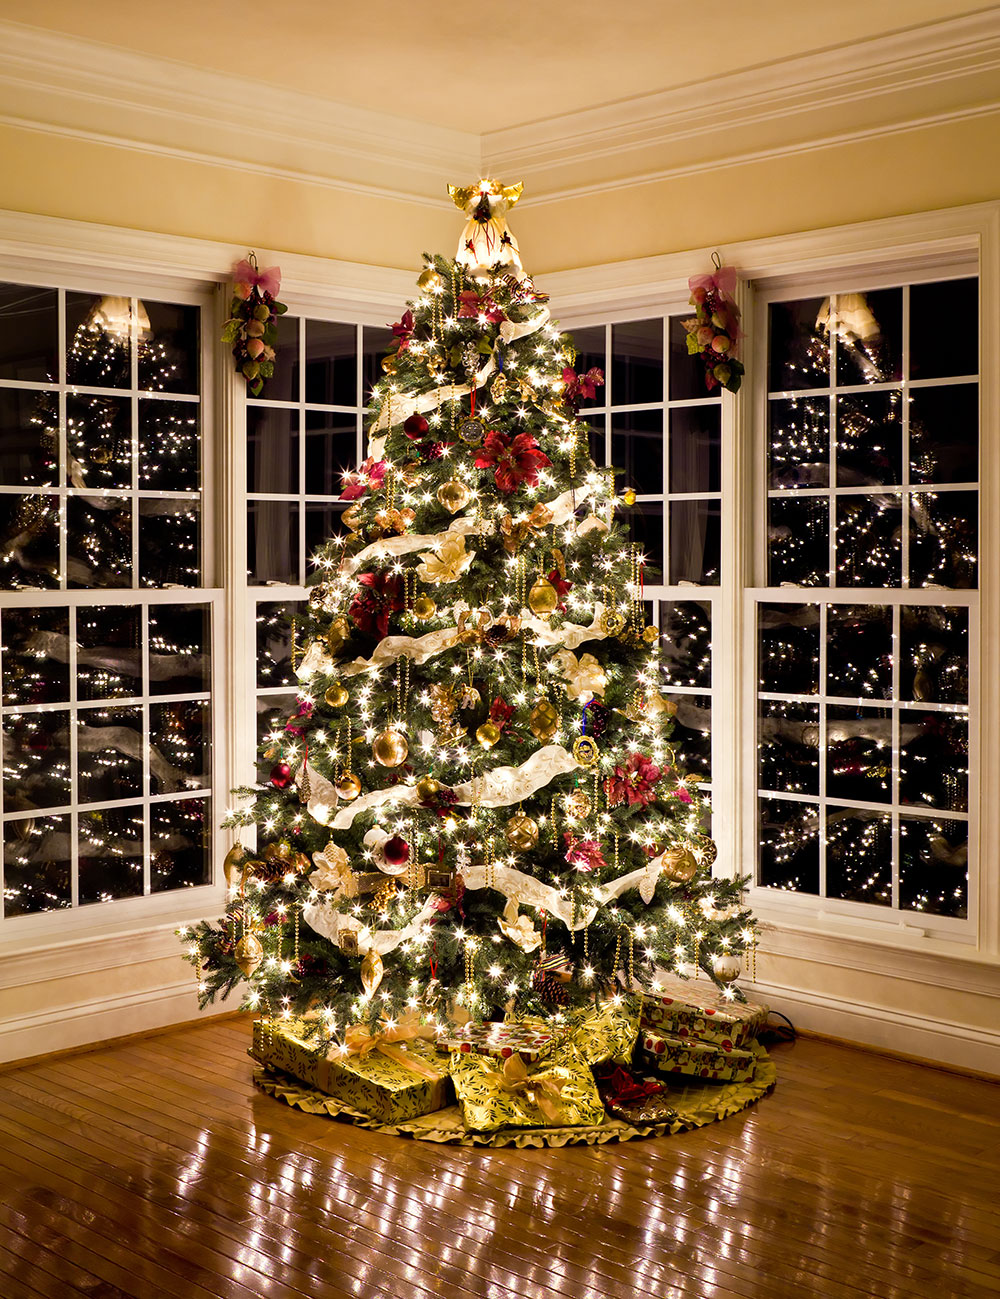 Holiday Decorating Services   Shonna Fox Design Give your home the holiday look of your dreams  Book a consultation today